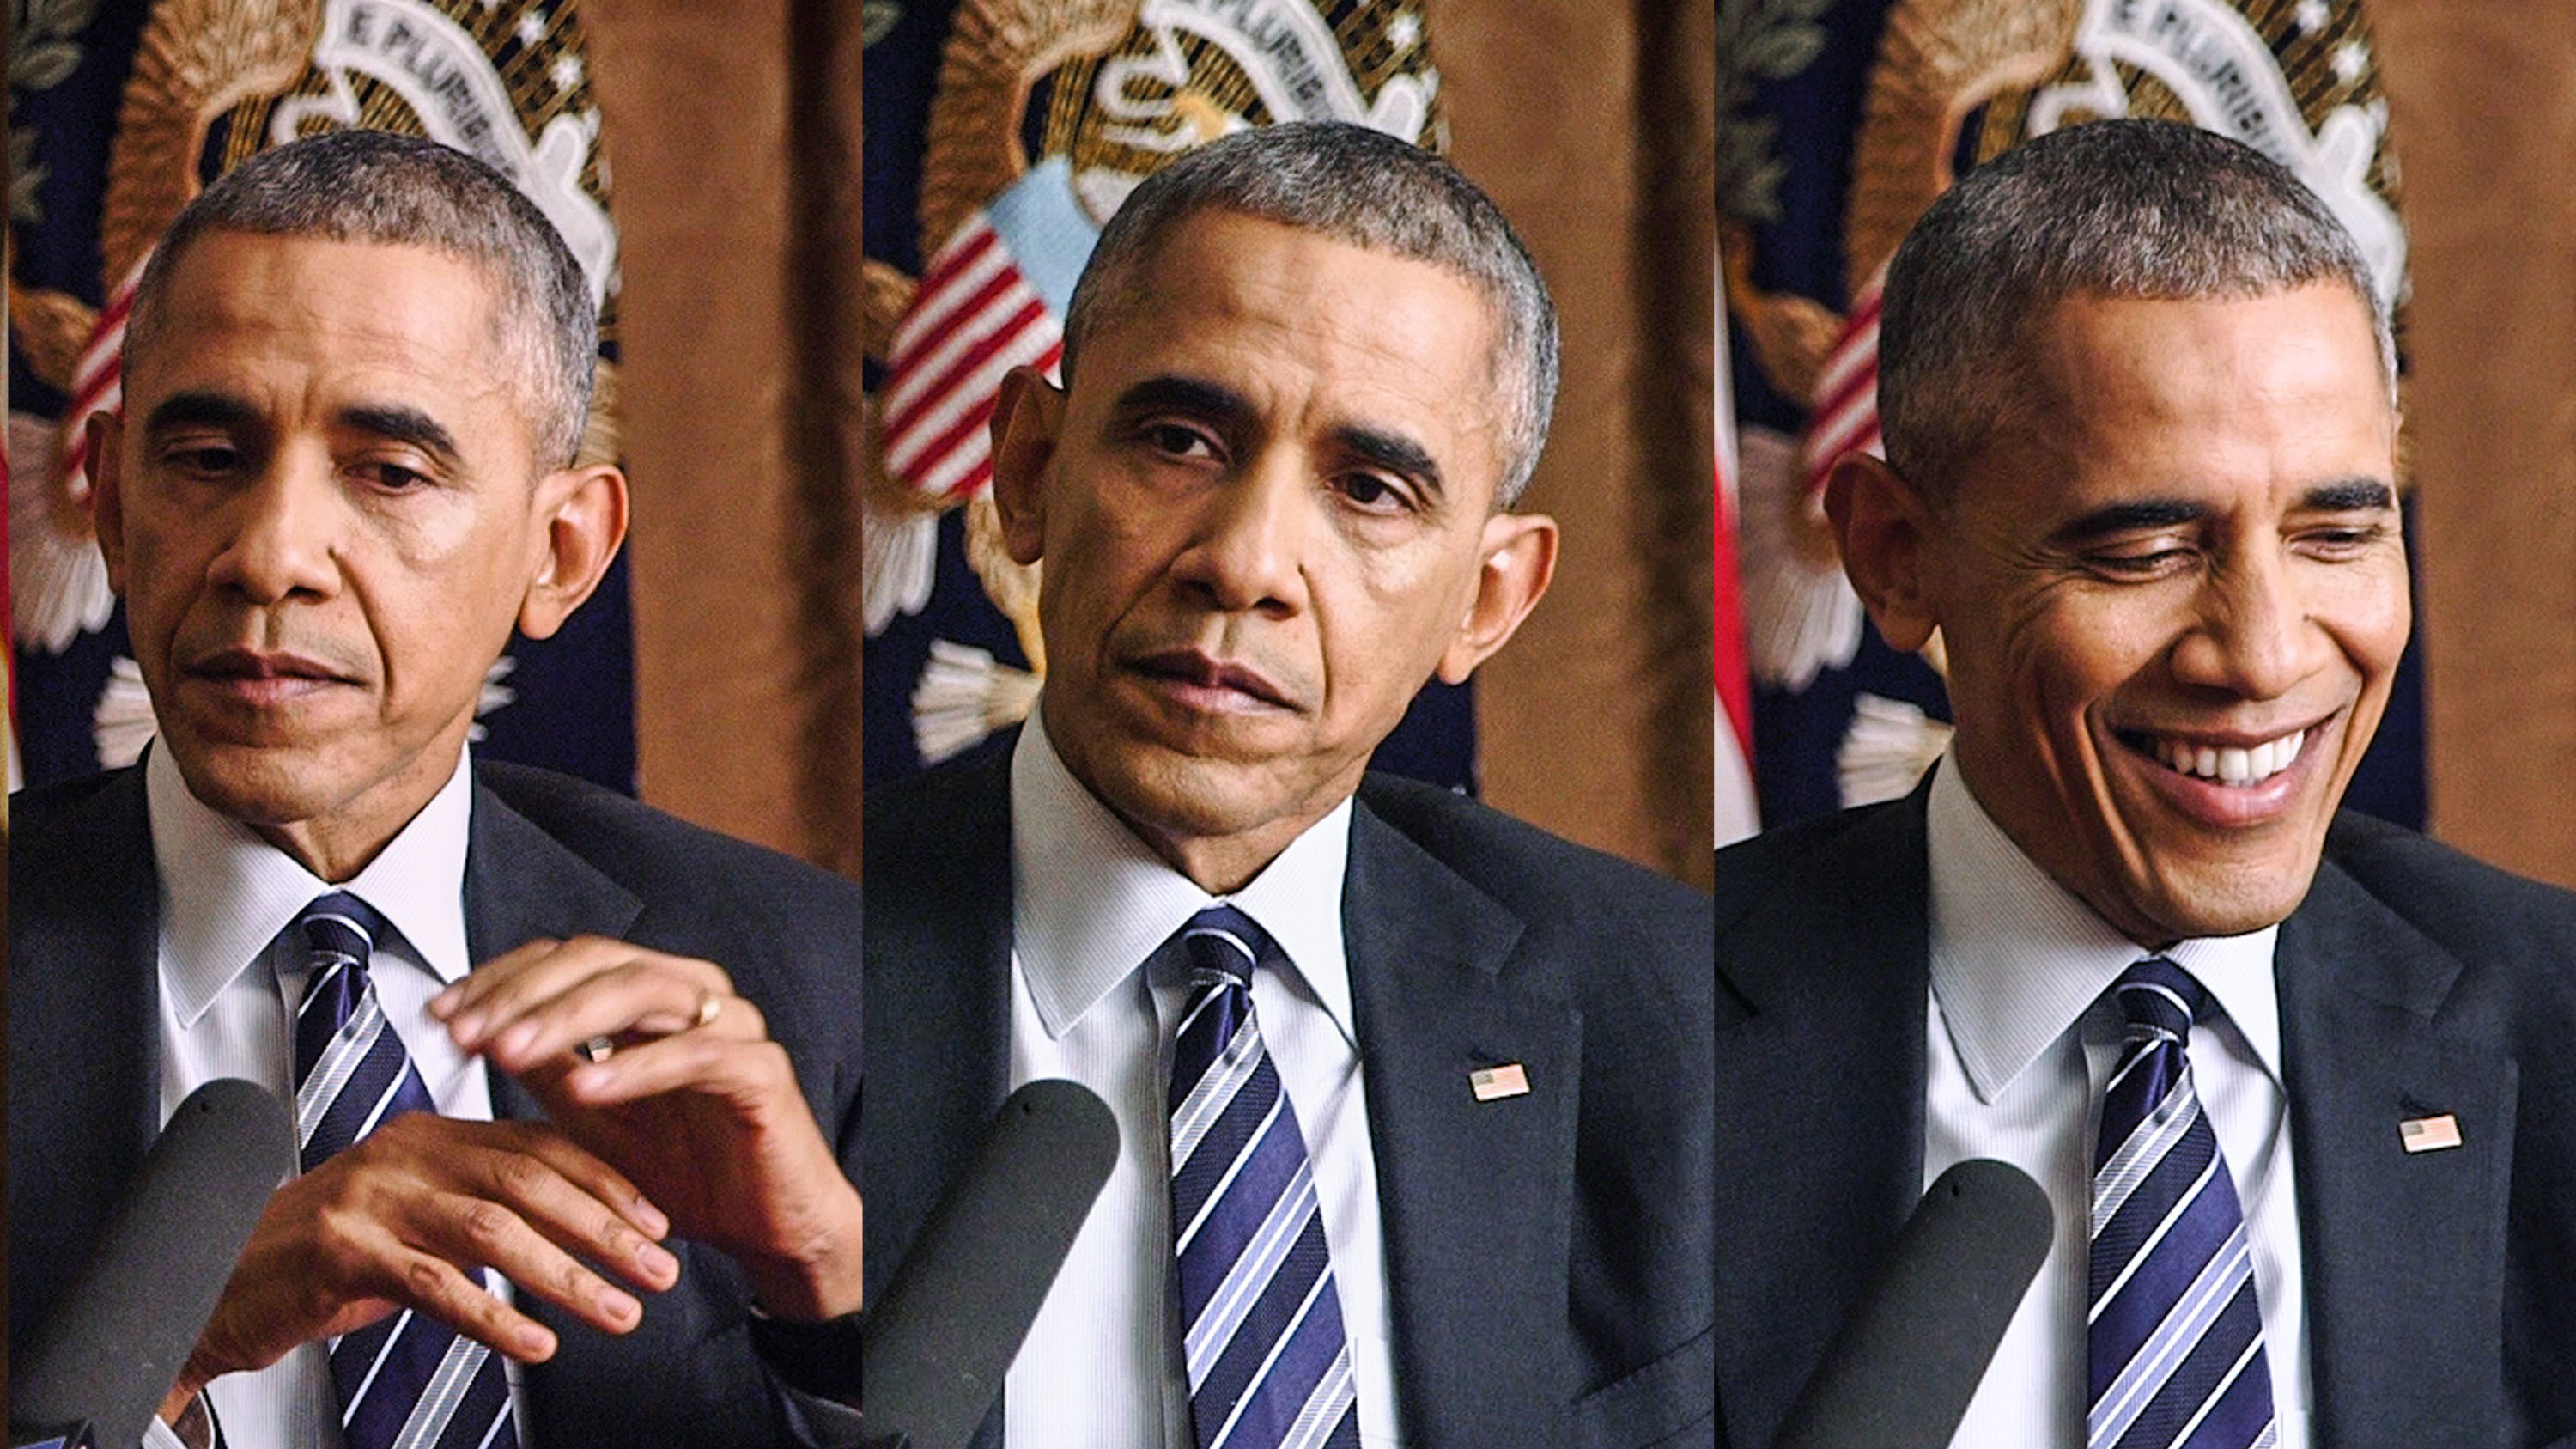 Scorecard For A Departing President: Assessing Obama's Successes And Shortcomings